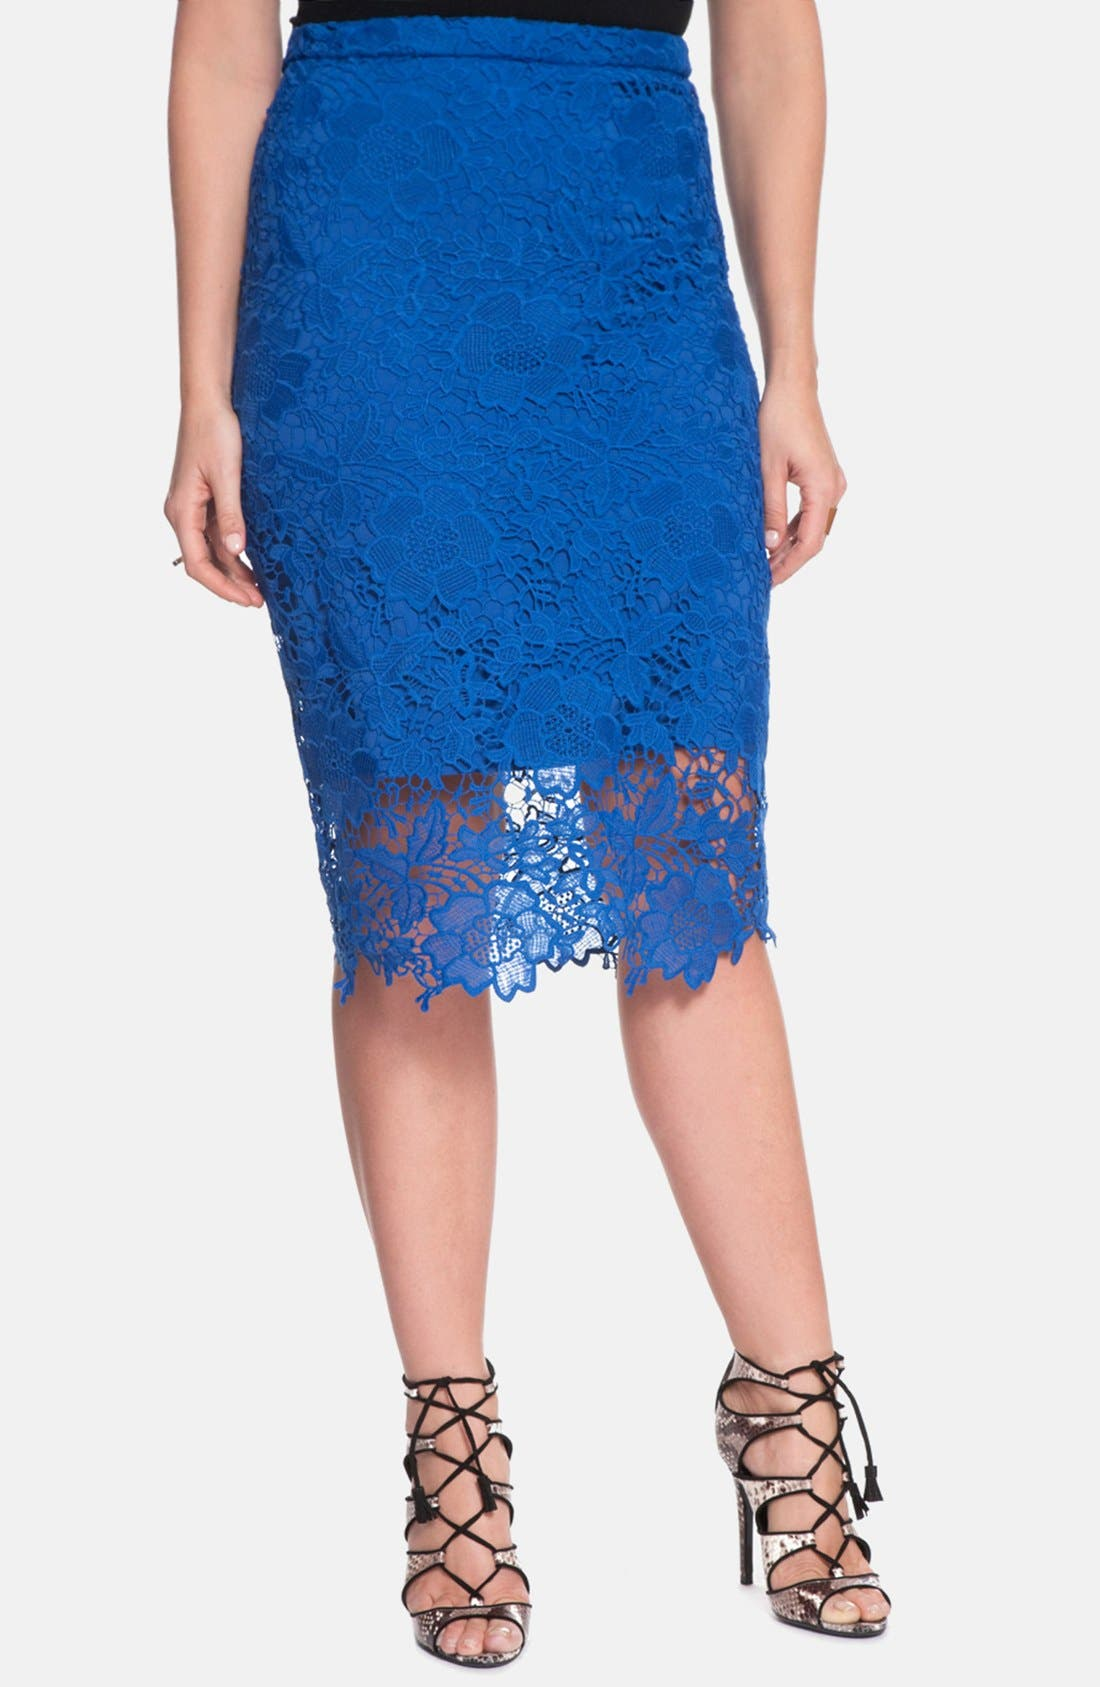 Alternate Image 1 Selected - ELOQUII Floral Lace Pencil Skirt (Plus Size)